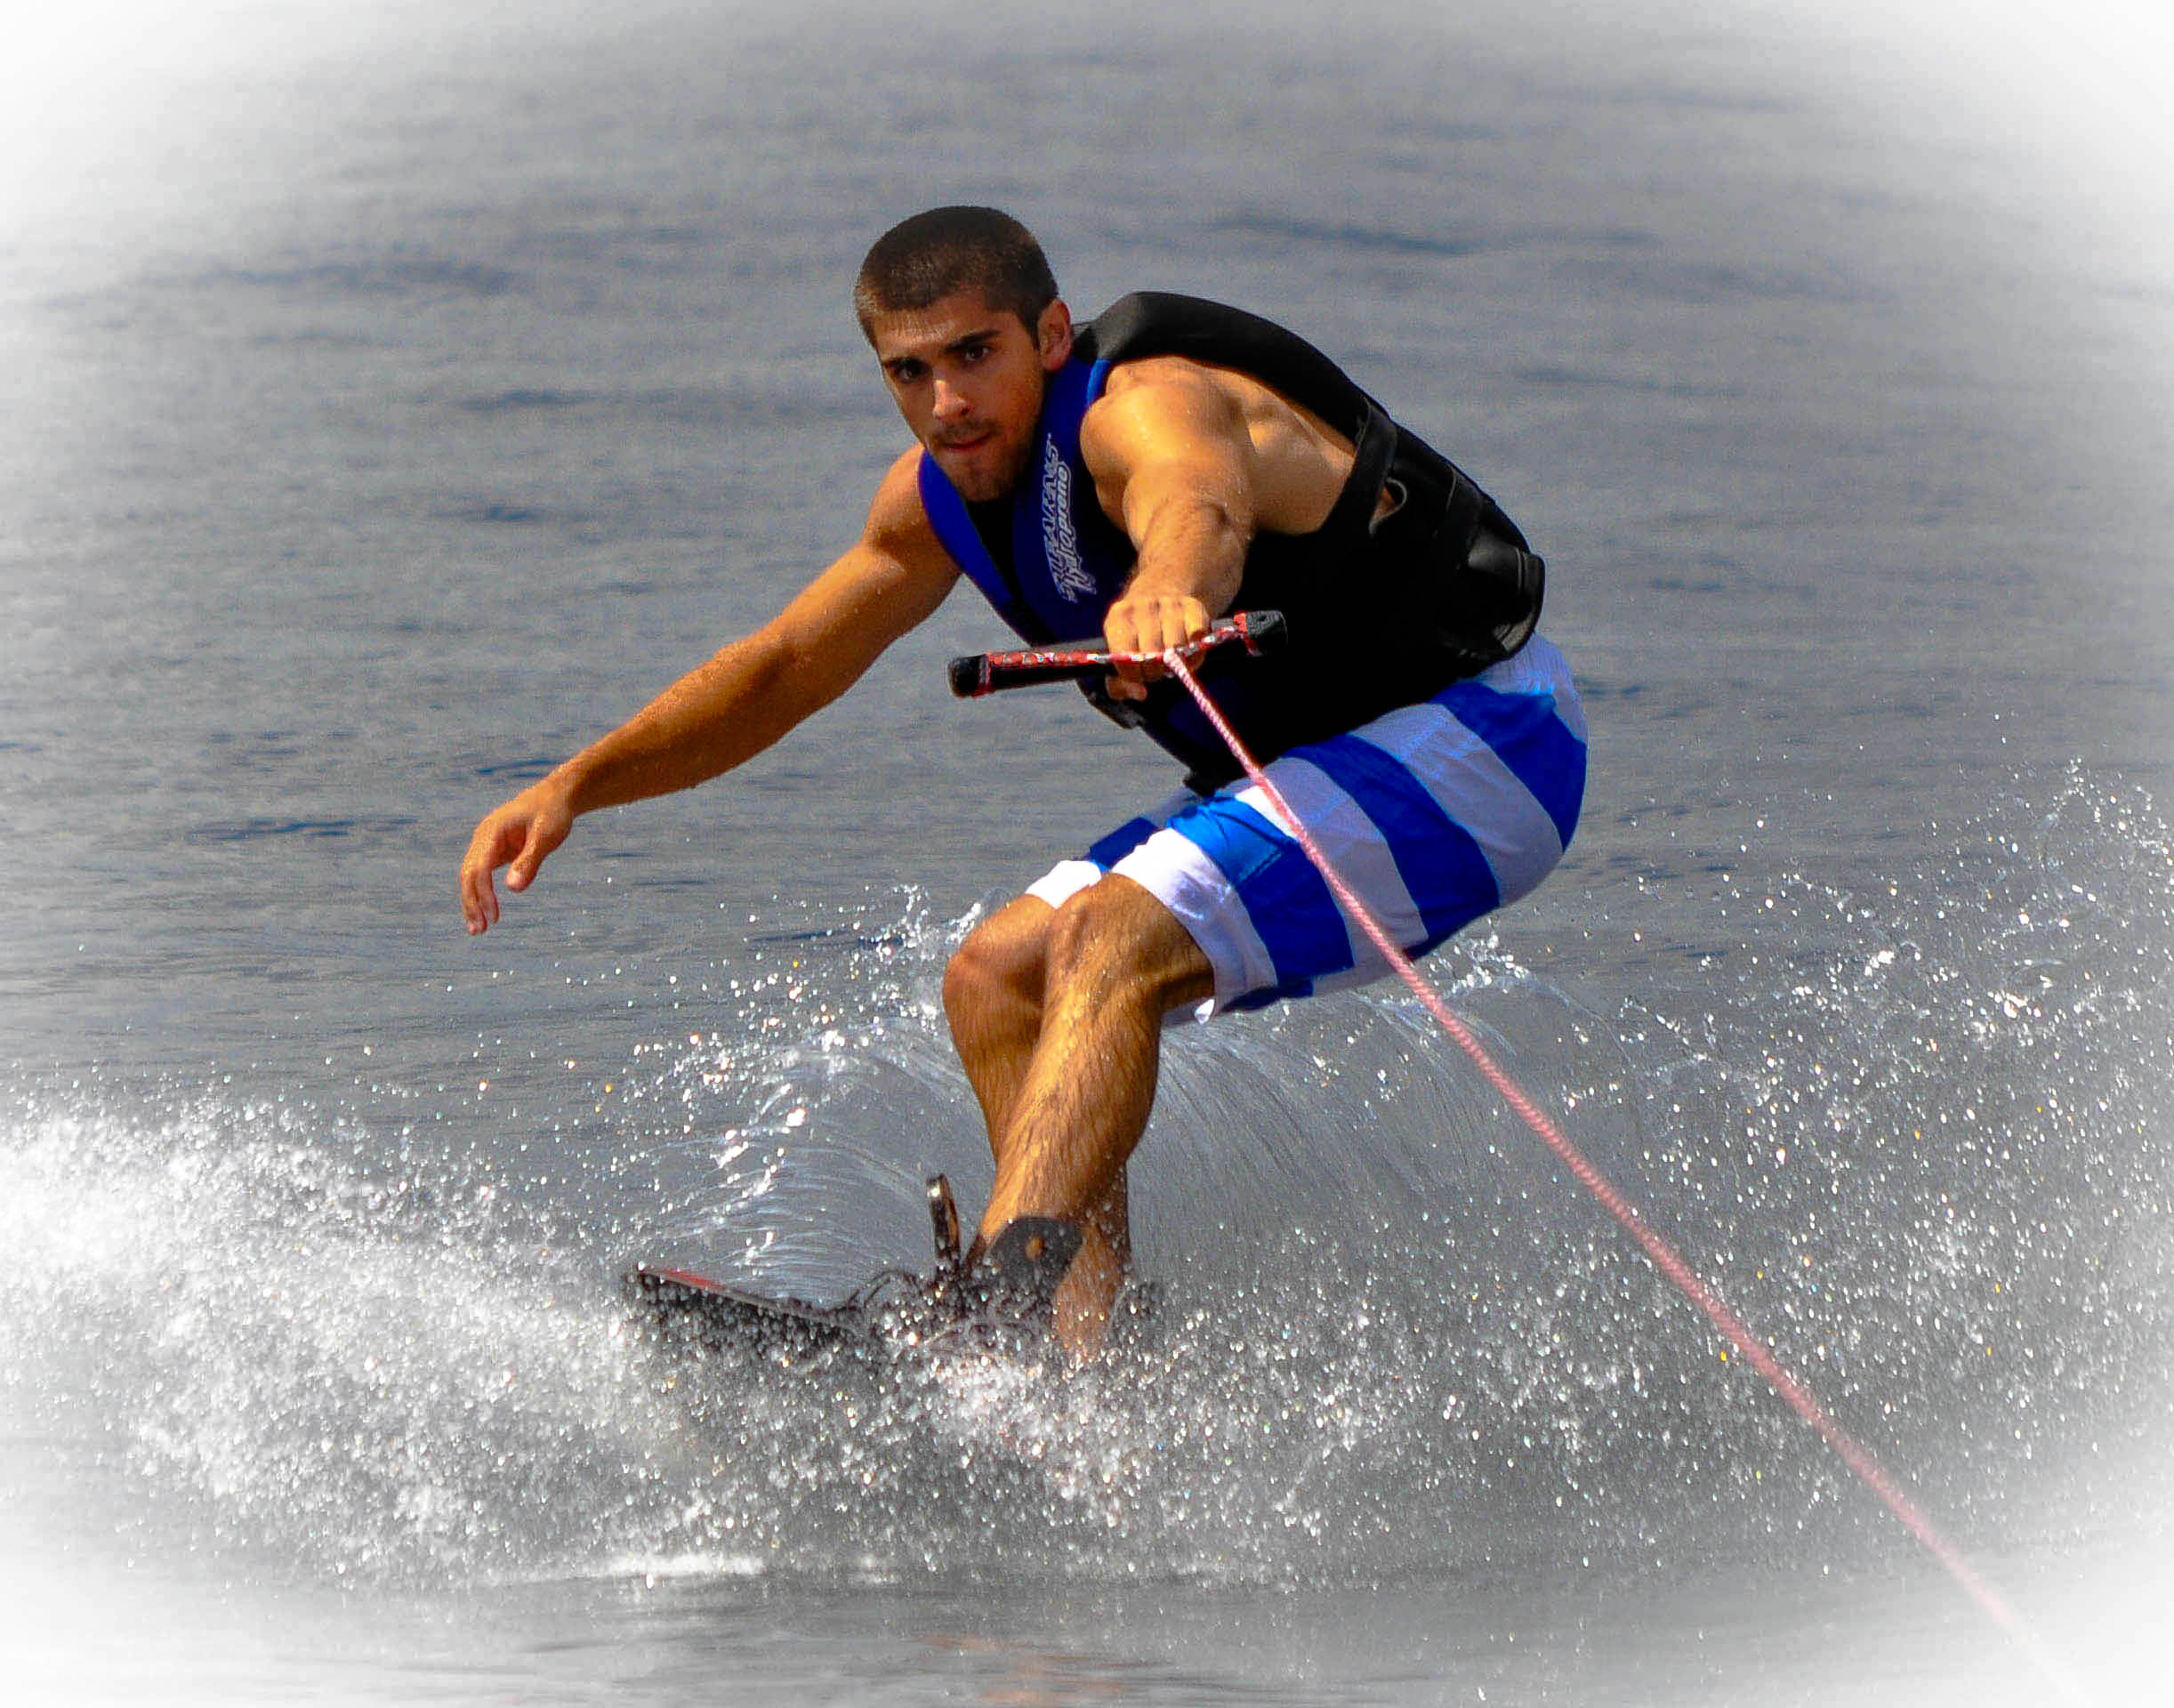 kevin-water-skiing-2-fb62537d333a3db04ccd22ad34232998ab11fbe7